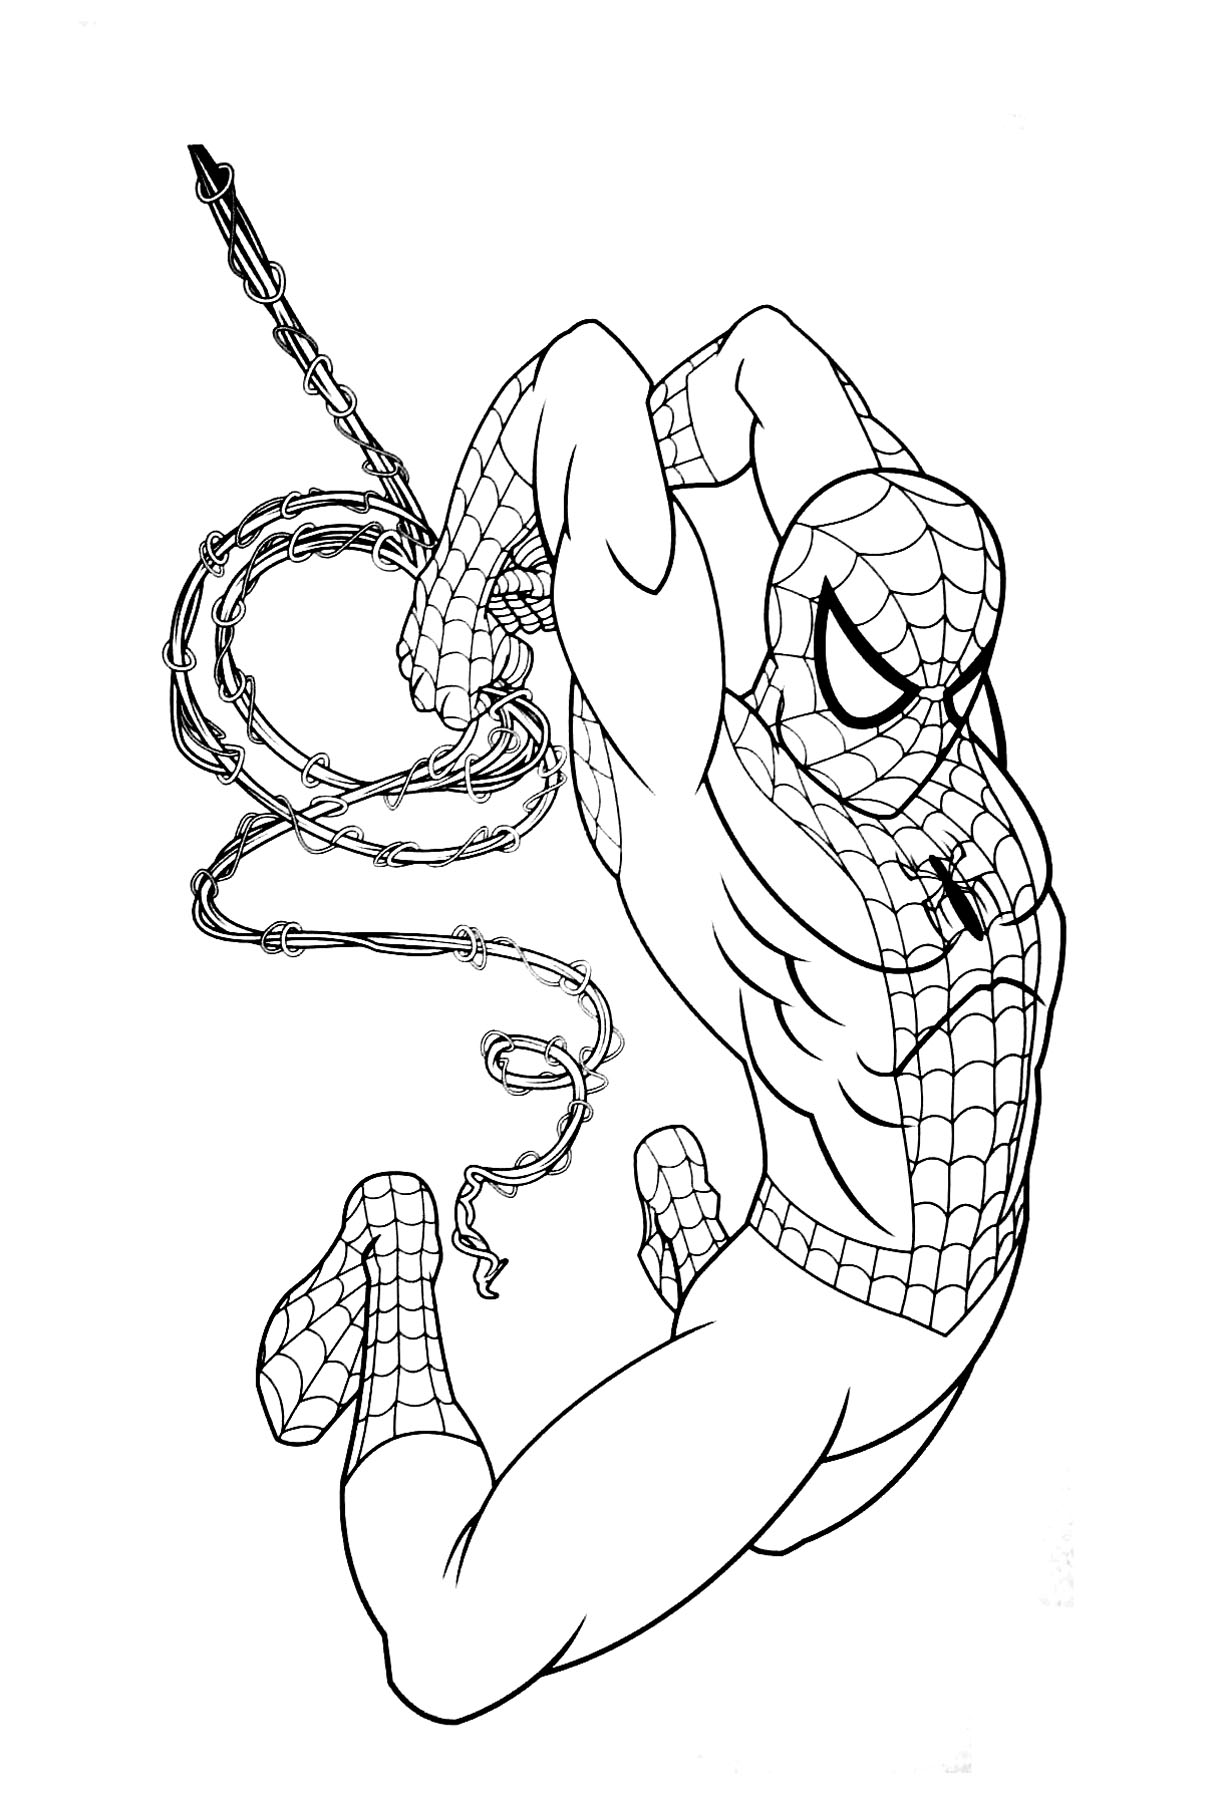 Spiderman gratuit 12 coloriage spiderman coloriages pour enfants - Photo de spiderman a imprimer gratuit ...